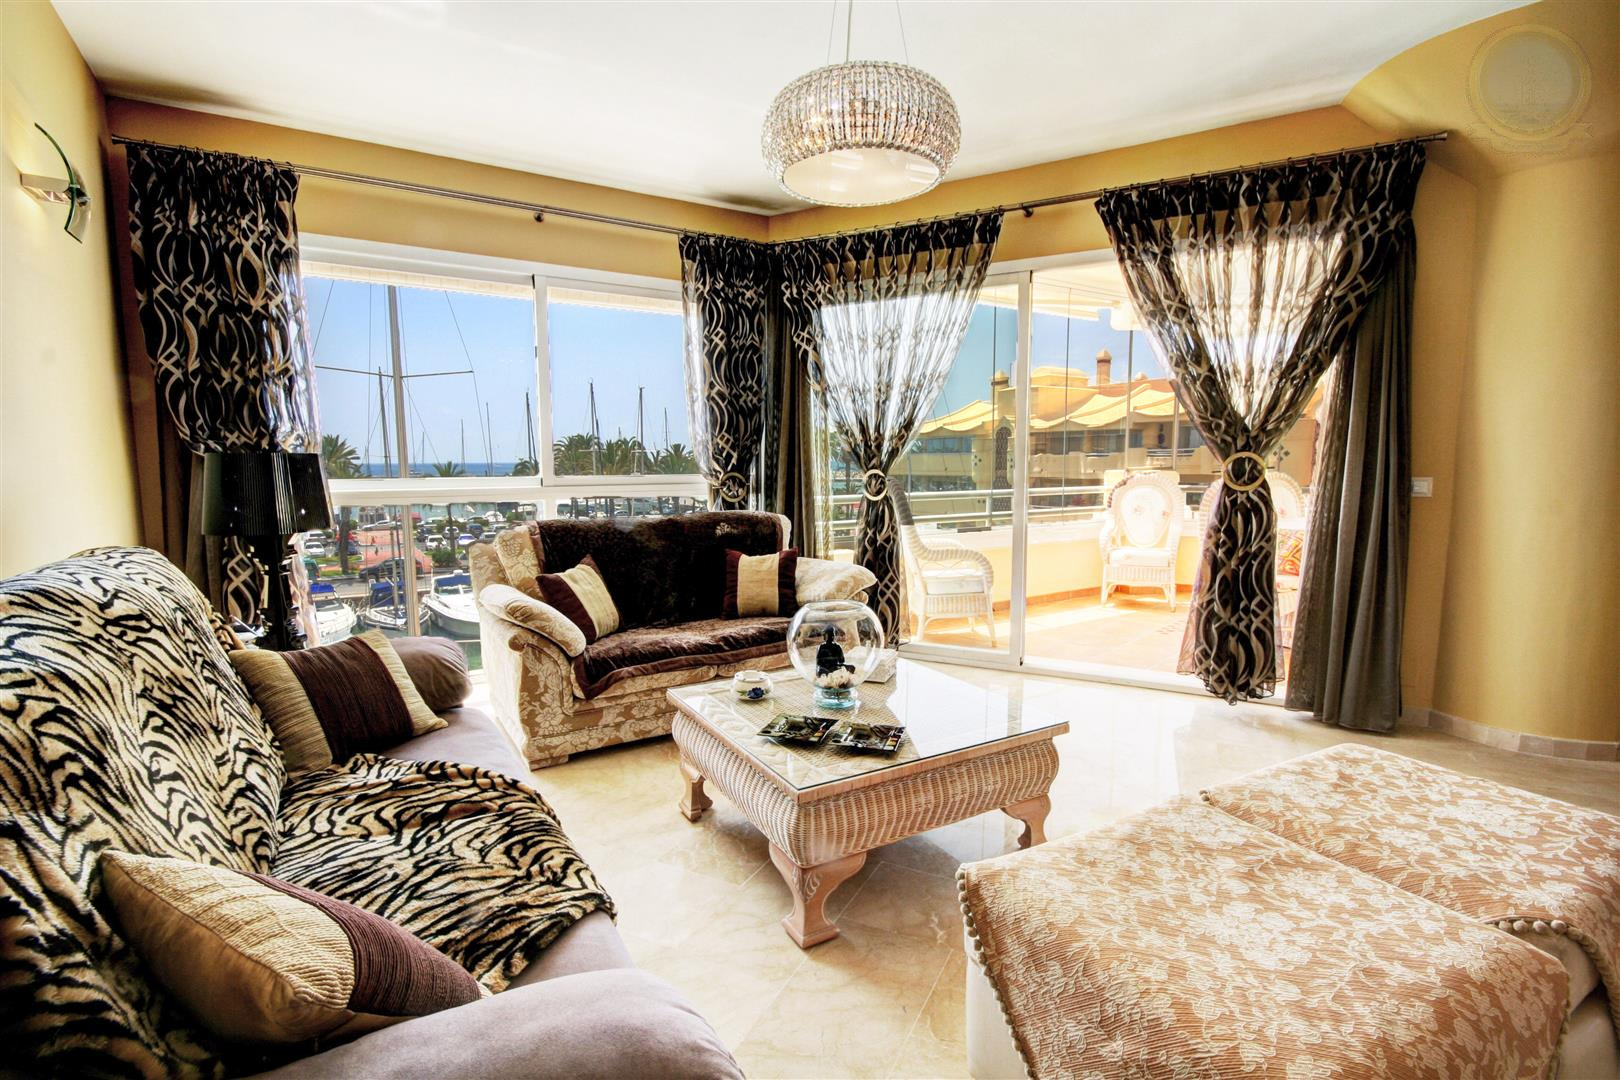 Penthouse for Sale in Puerto Marina within Las Islas del Poniente -Lounge